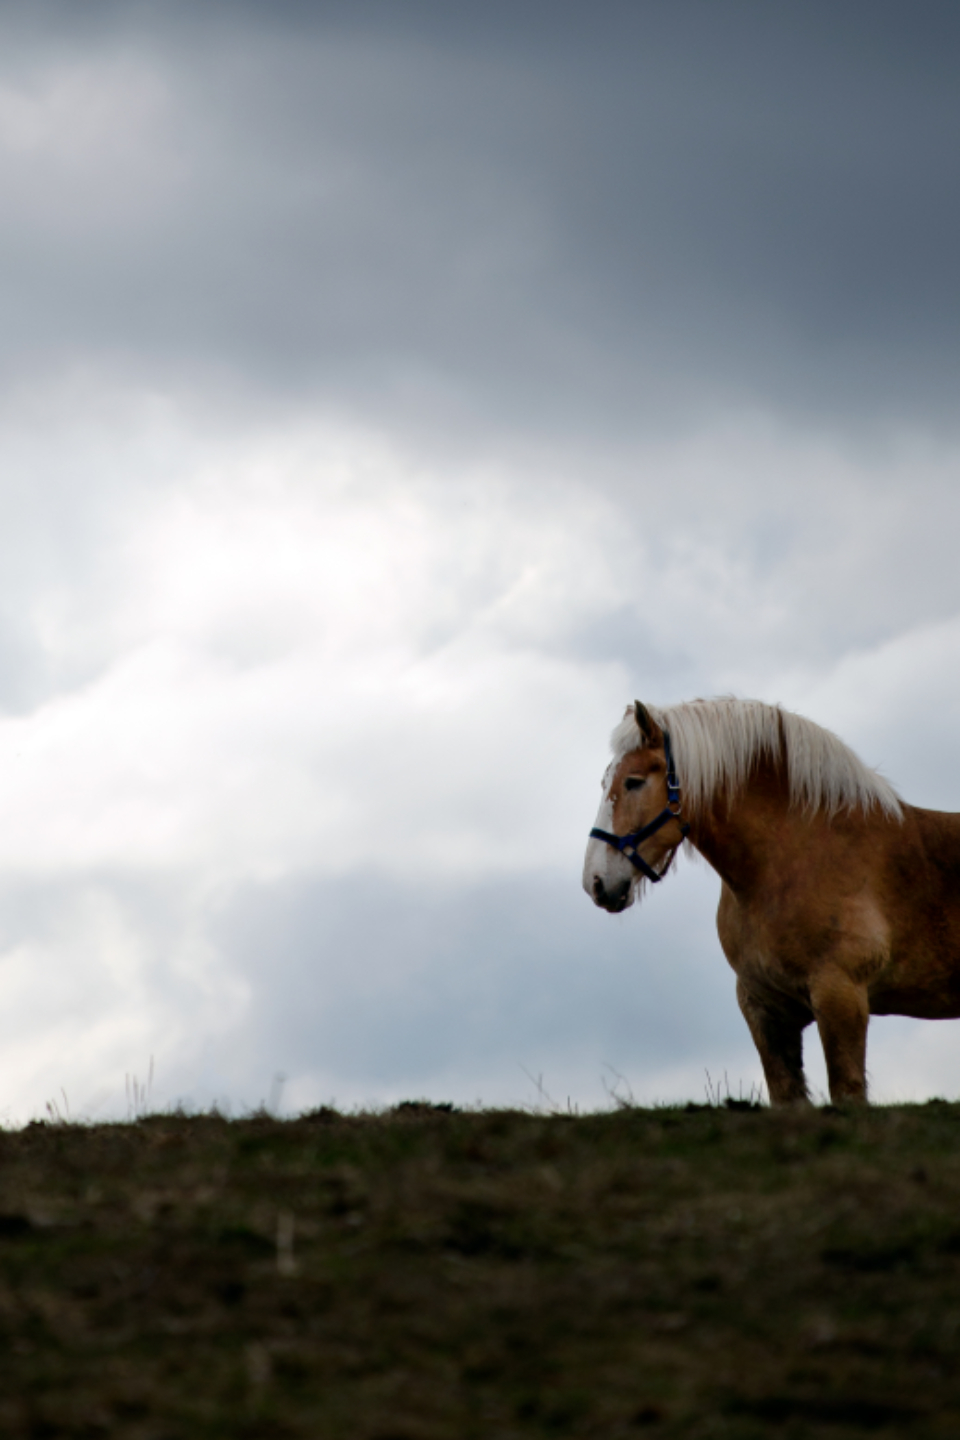 horse pasture clouds sky equine peaceful grass grazing nature view animal stormy scene outside outdoors